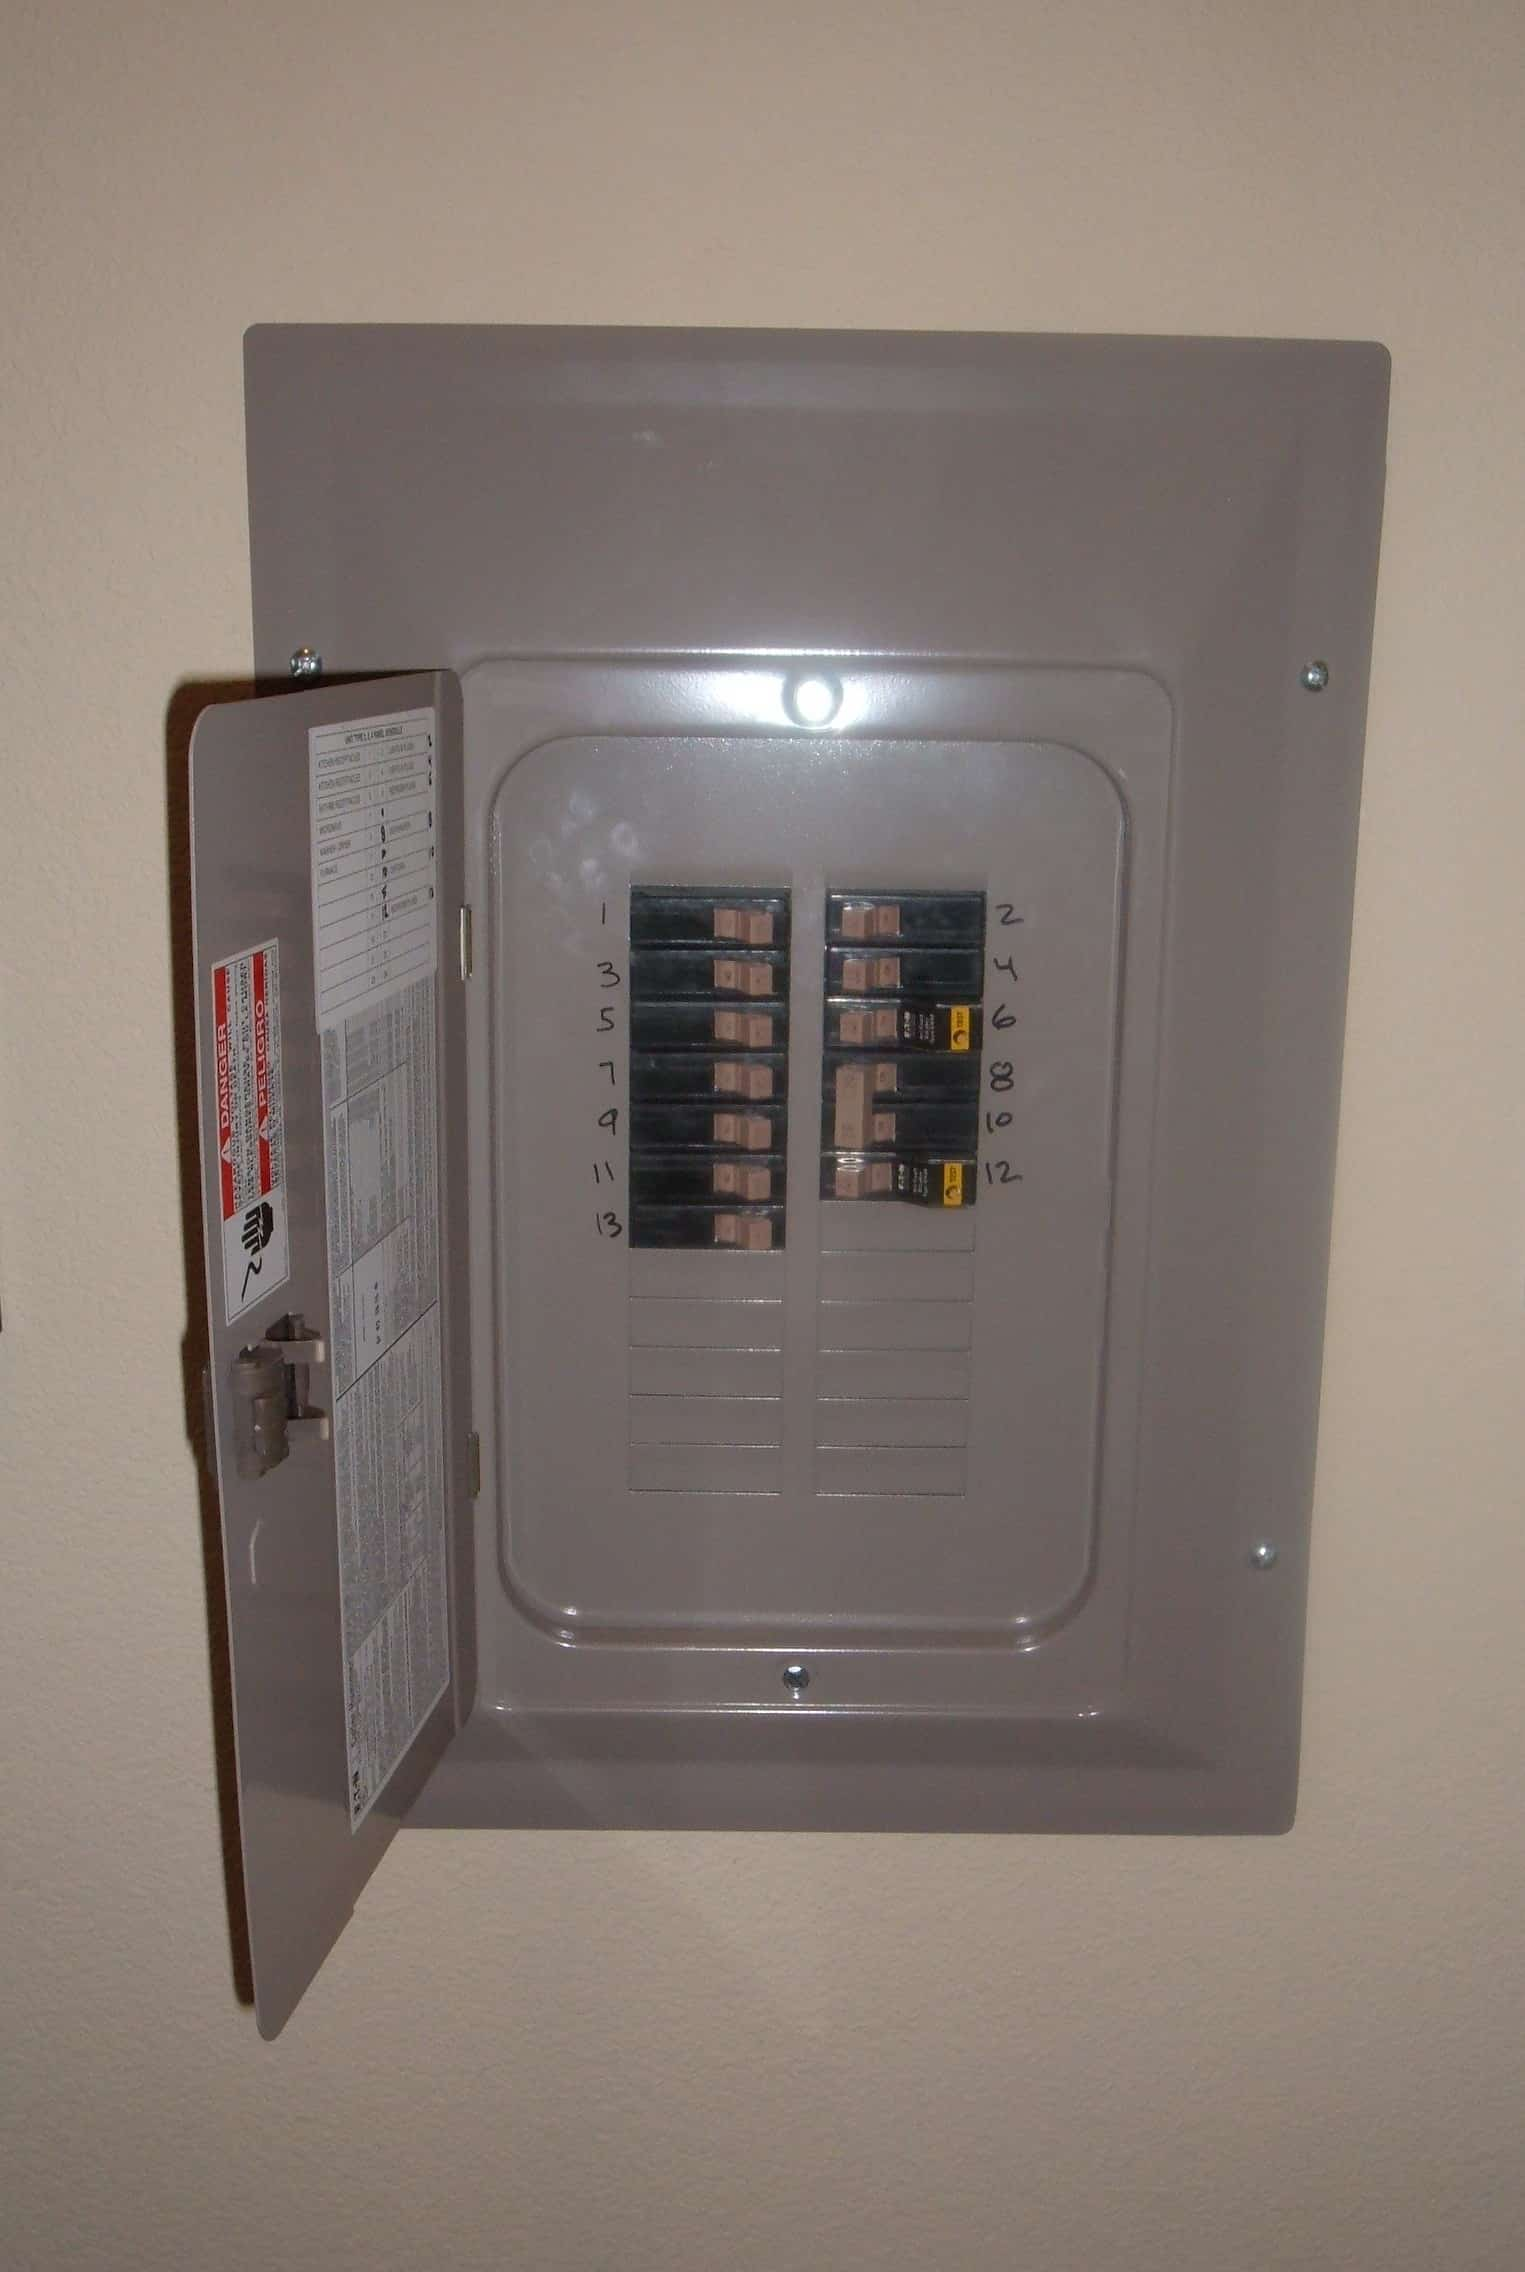 How To Reset A Tripped Circuit Breaker Switch On A Fuse Box Panel